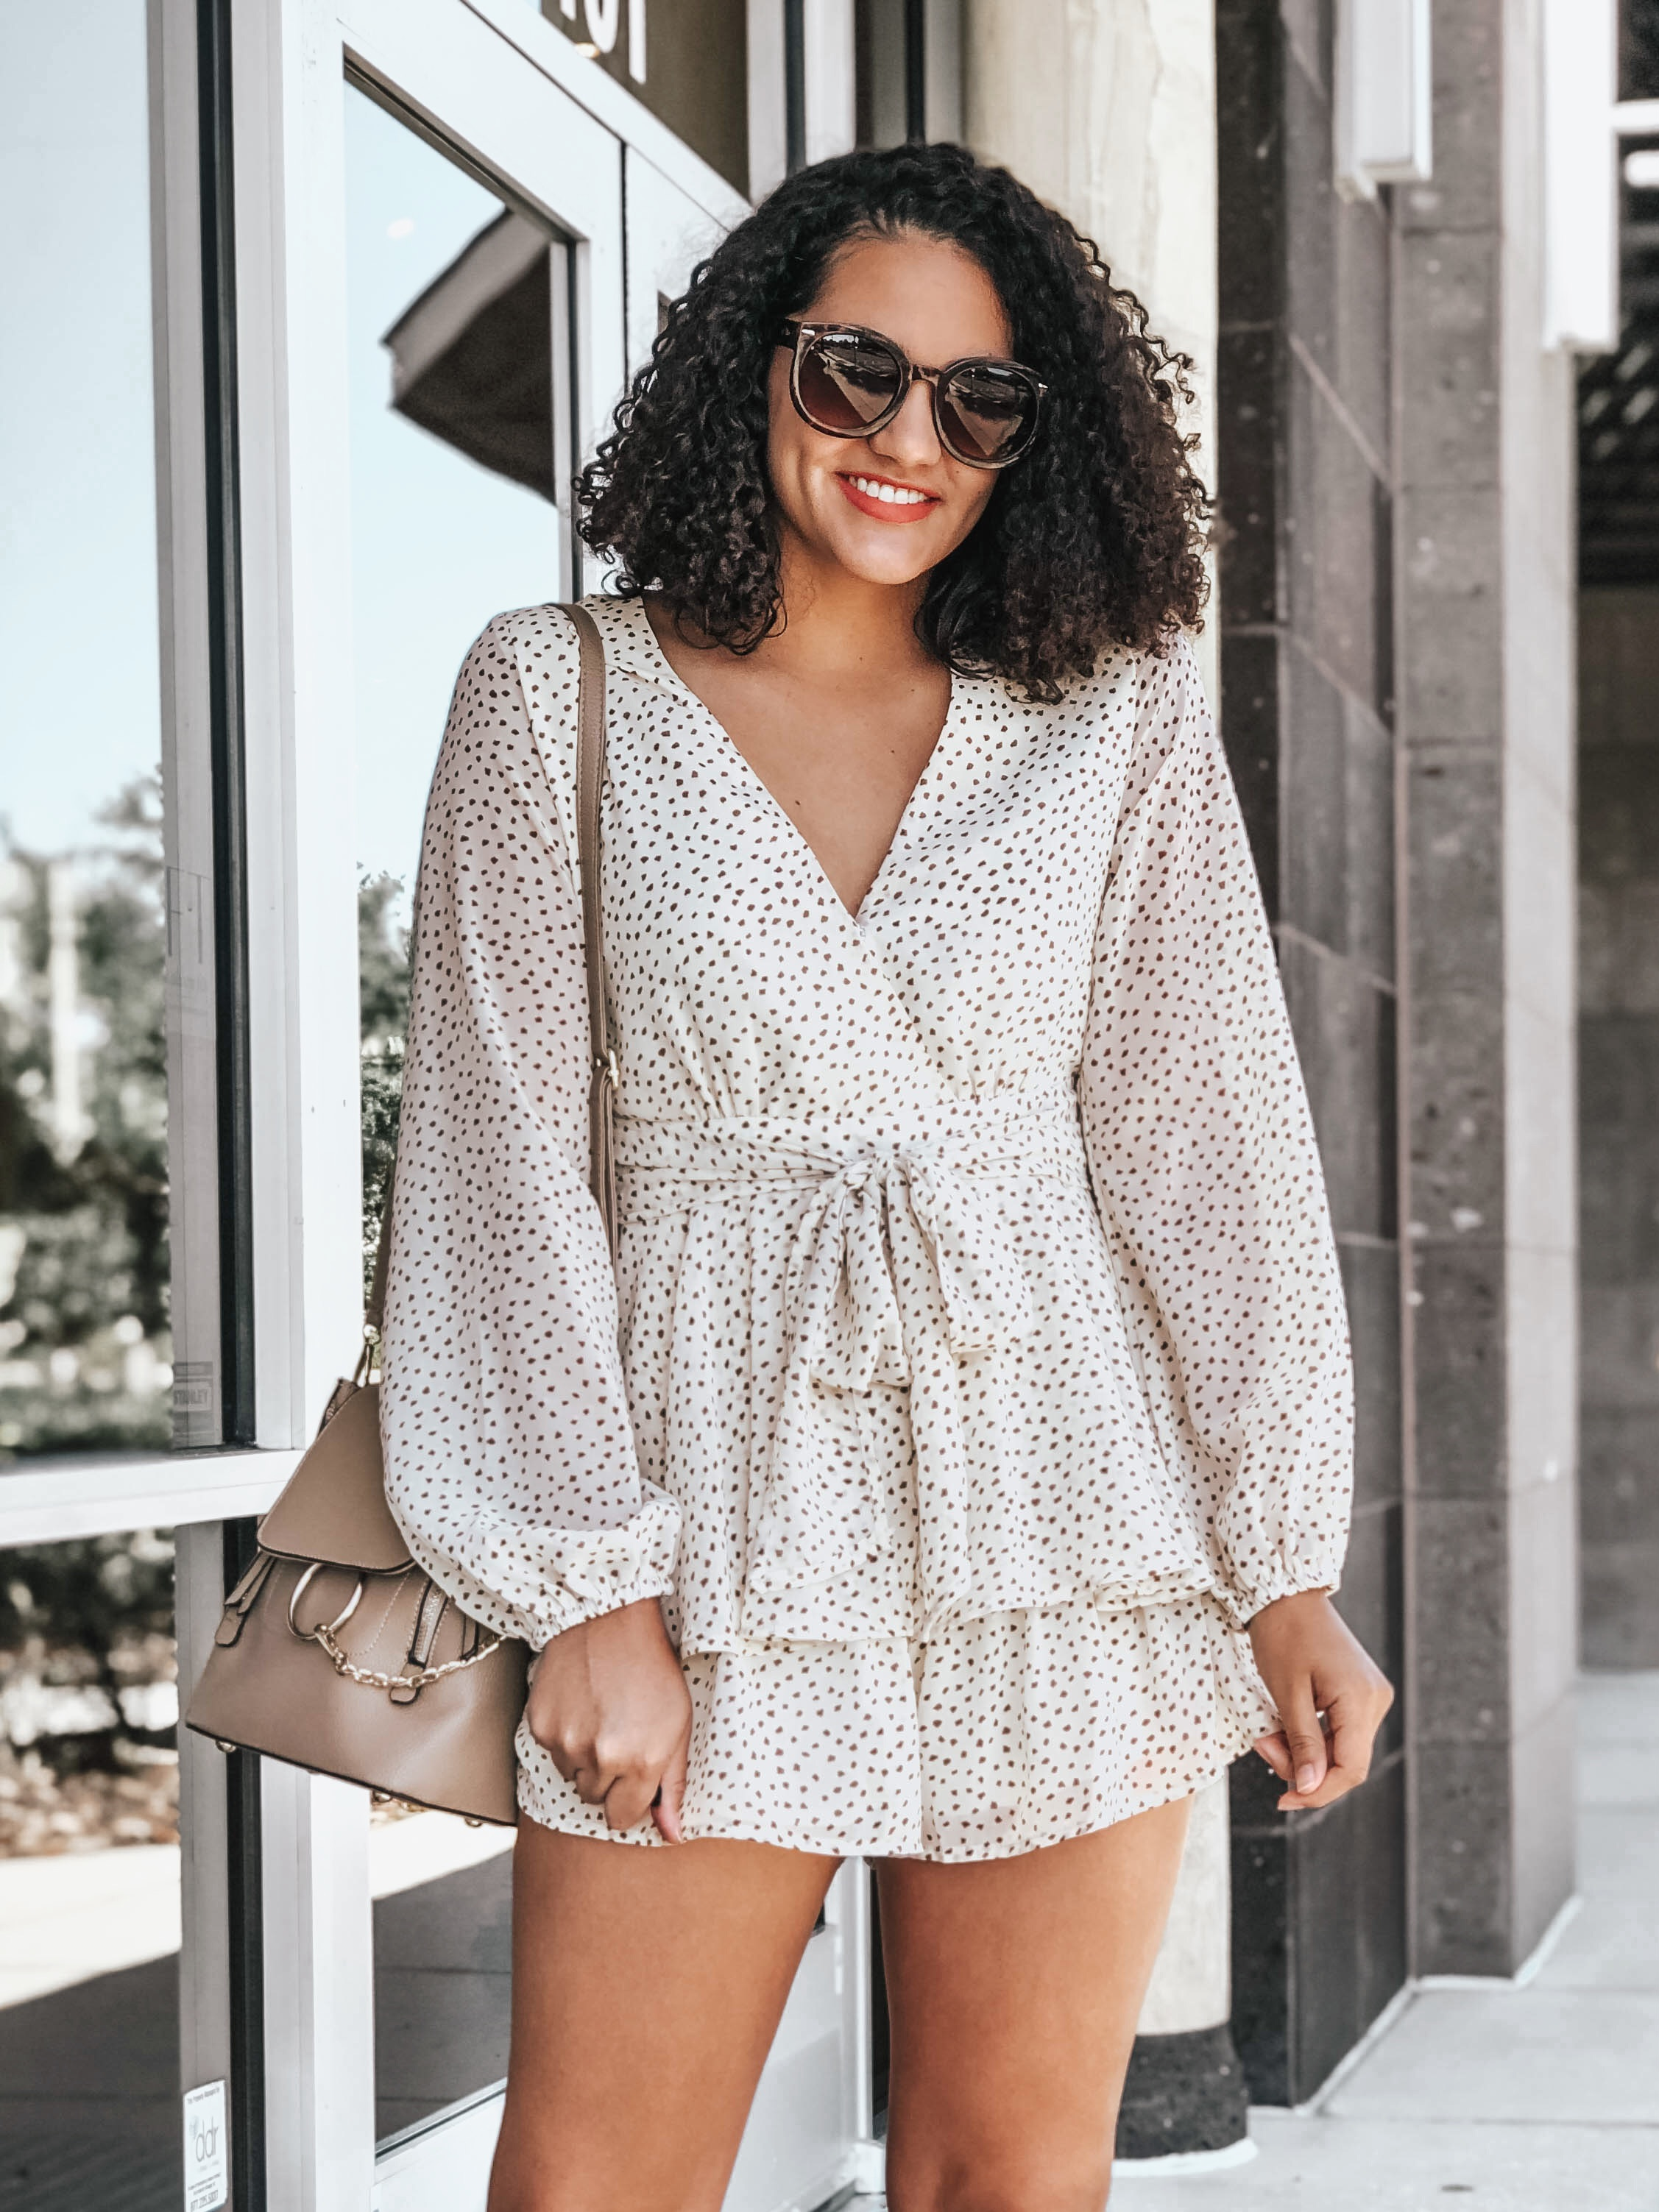 White Polka Dot Romper from Chicwish, Sunglasses from Amazon, Bag from Amazon